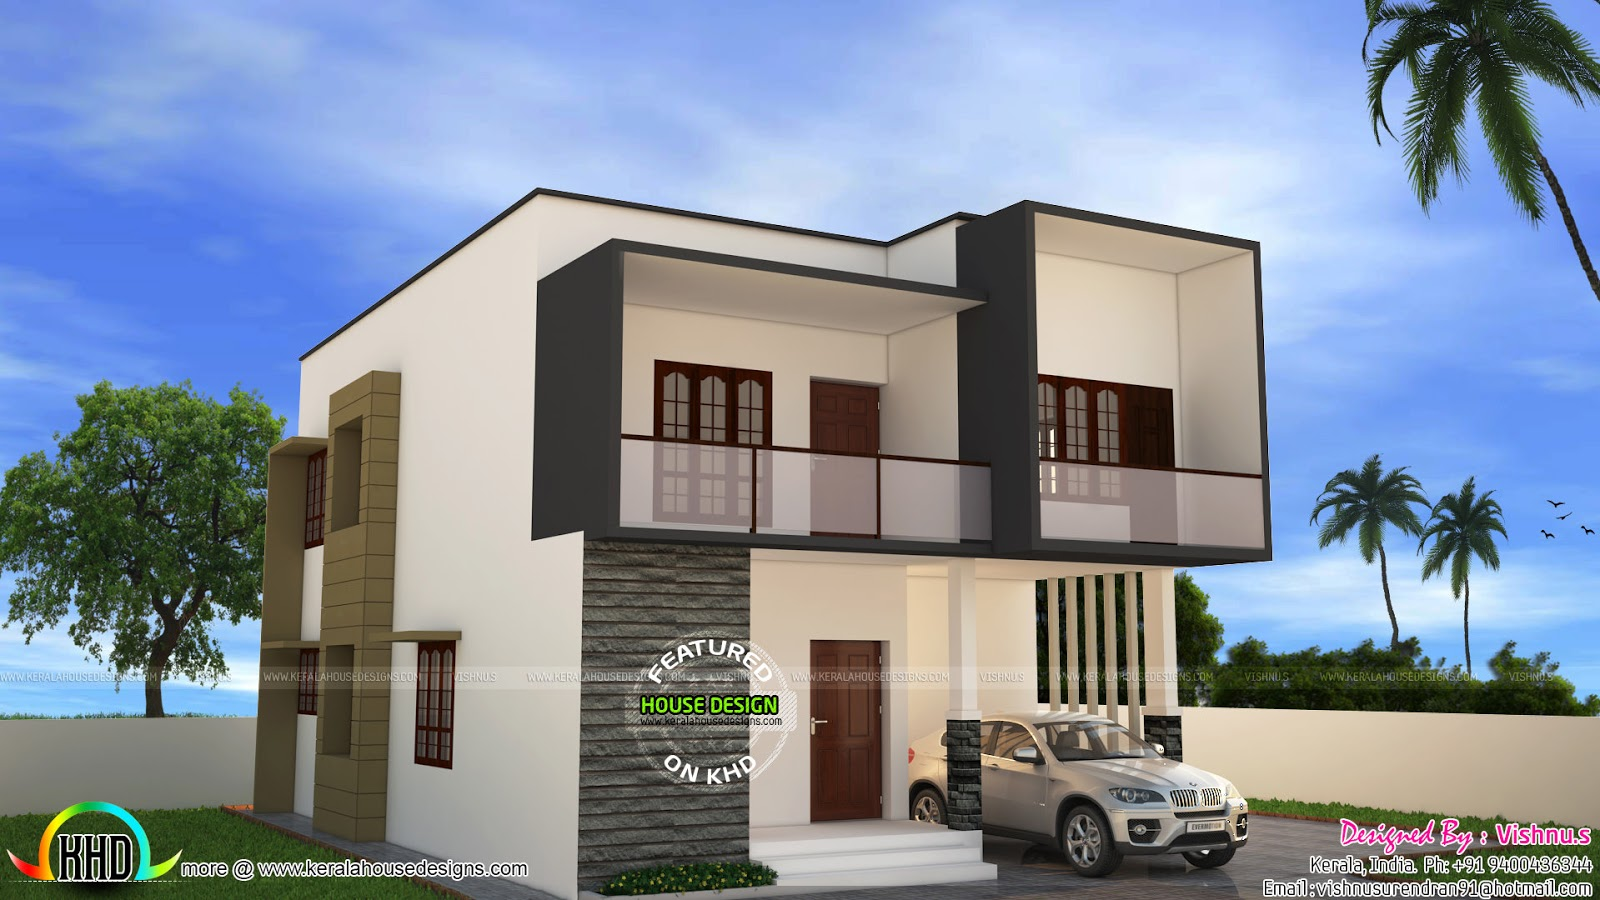 Simple modern house by vishnu s kerala home design and for Simple house designs